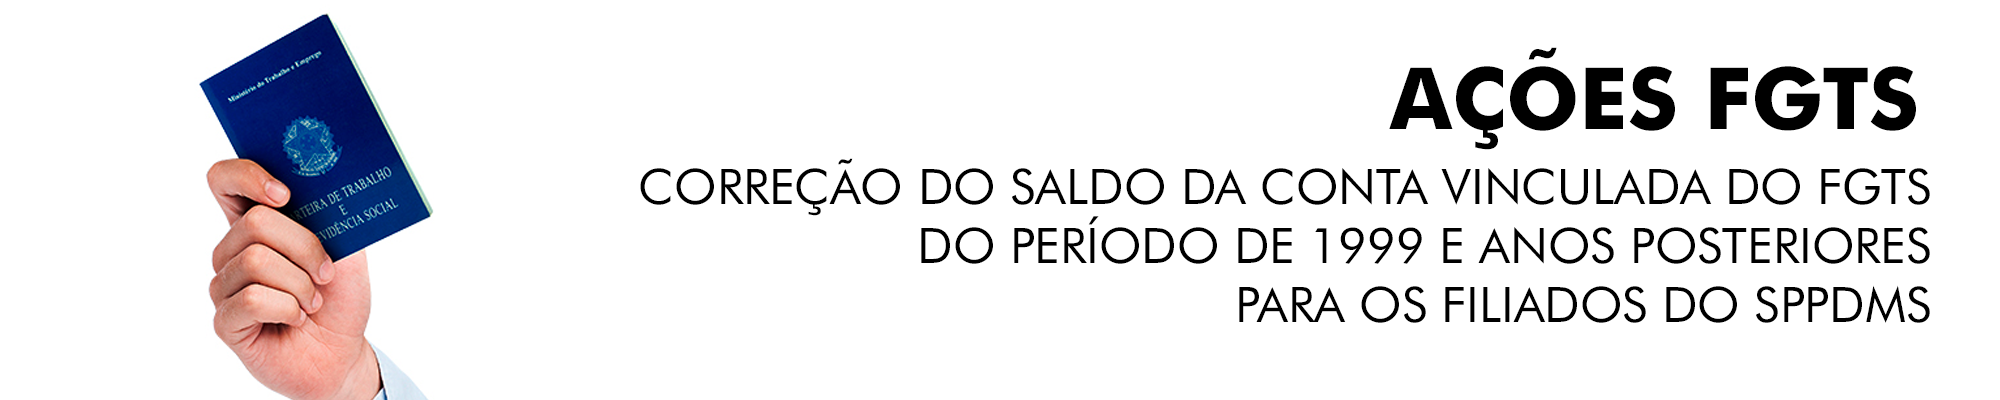 http://sppdms.org.br/wp-content/uploads/2019/05/banner-fgts.png